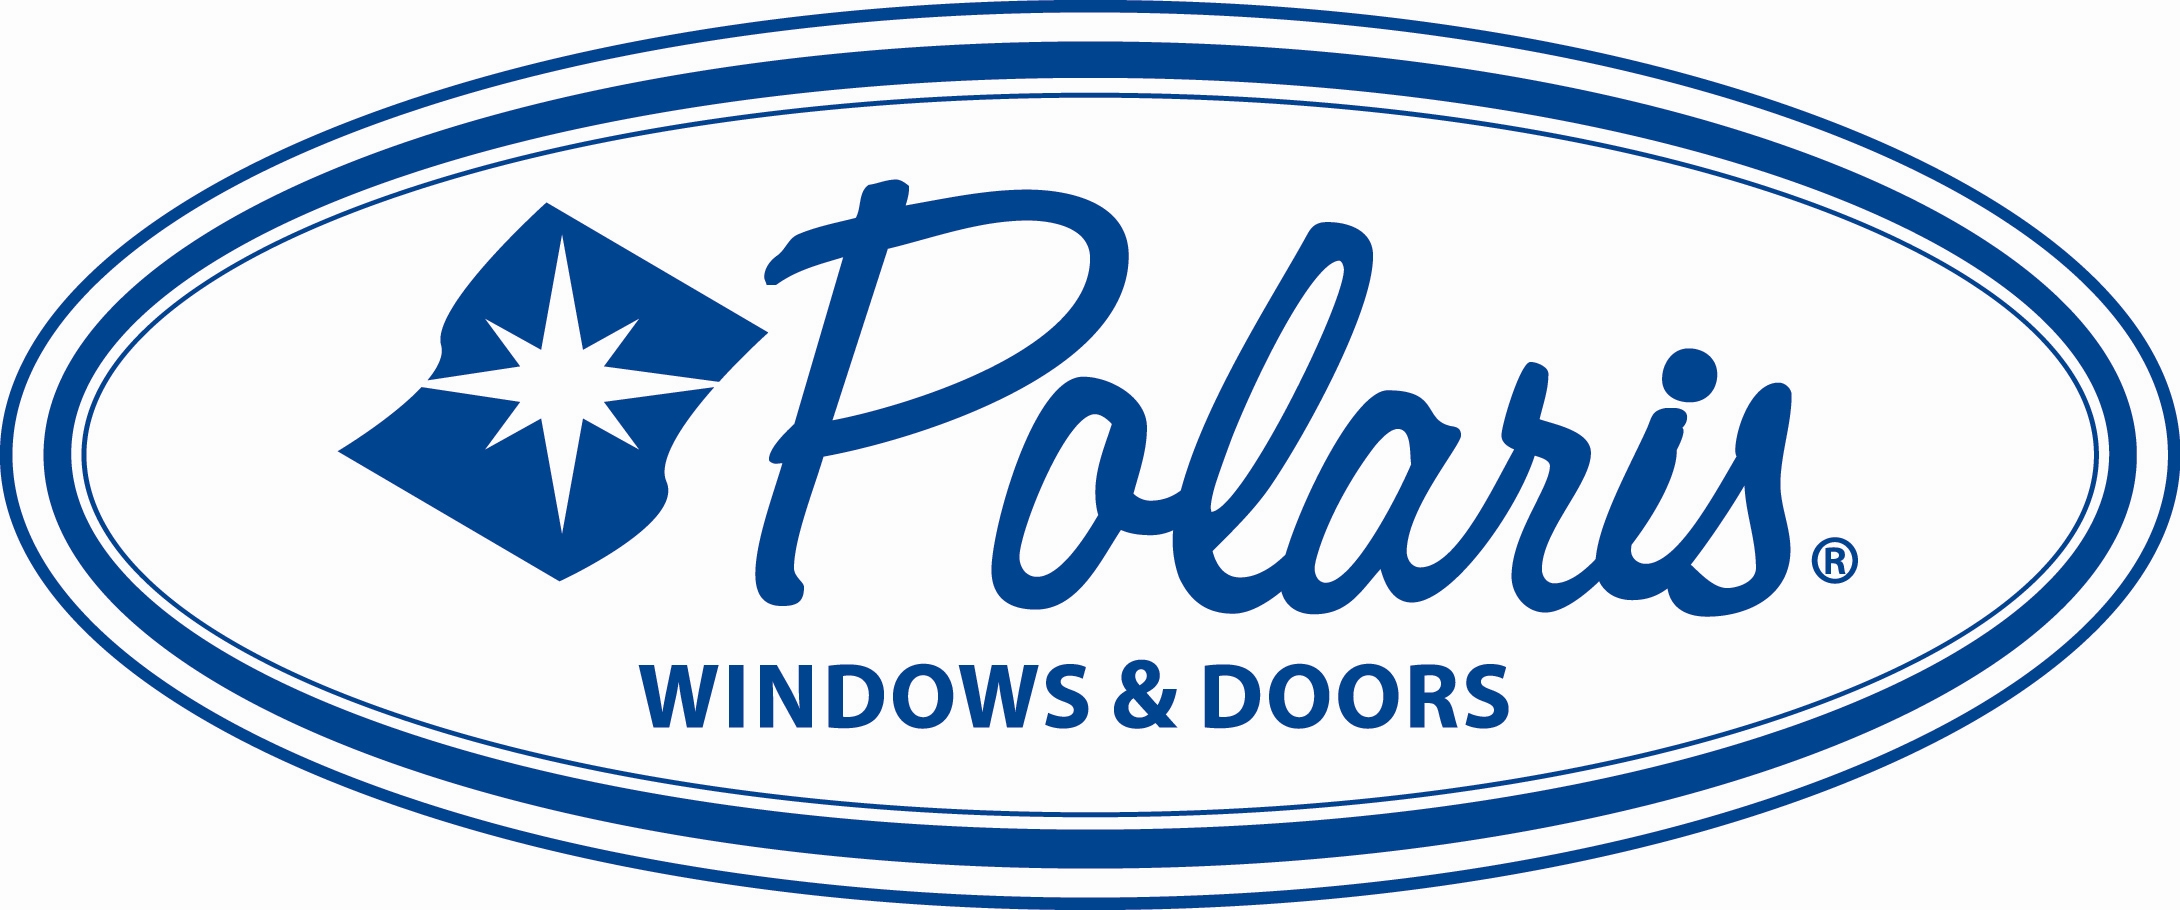 replacement windows, windows cincinnati, windows columbus